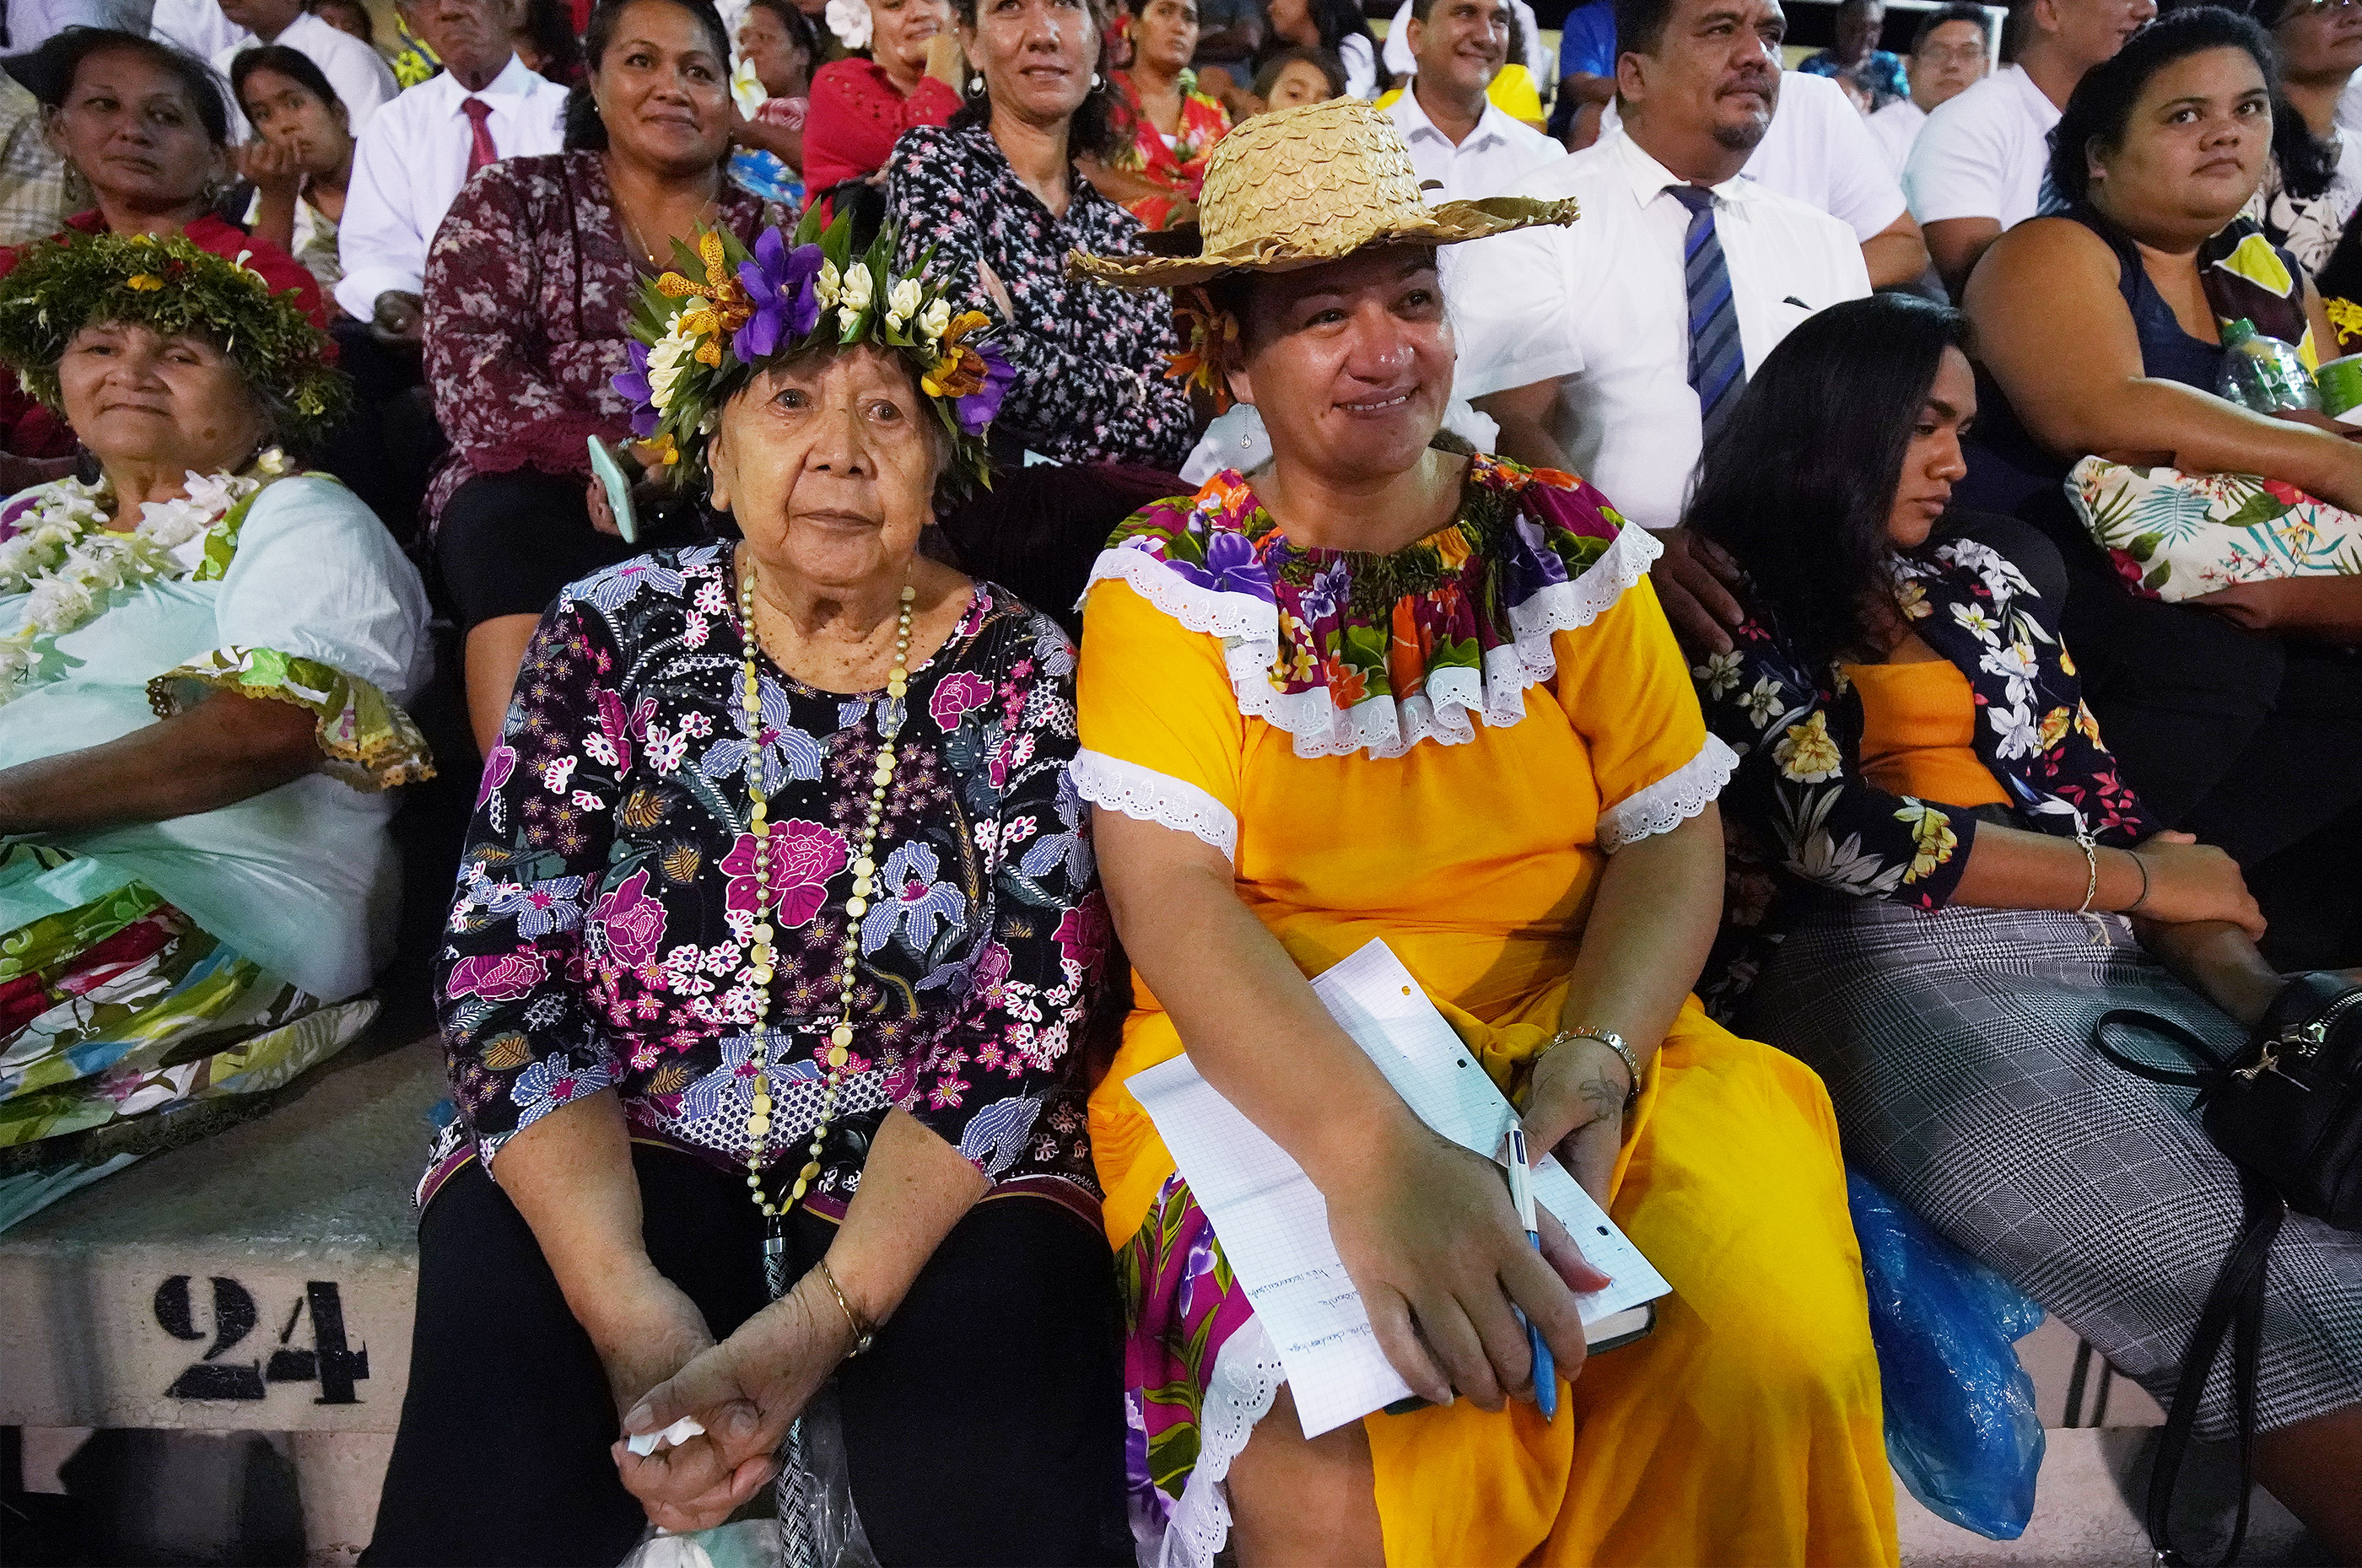 Attendees listen to speakers during a devotional in Papeete, Tahiti, on May 24, 2019.